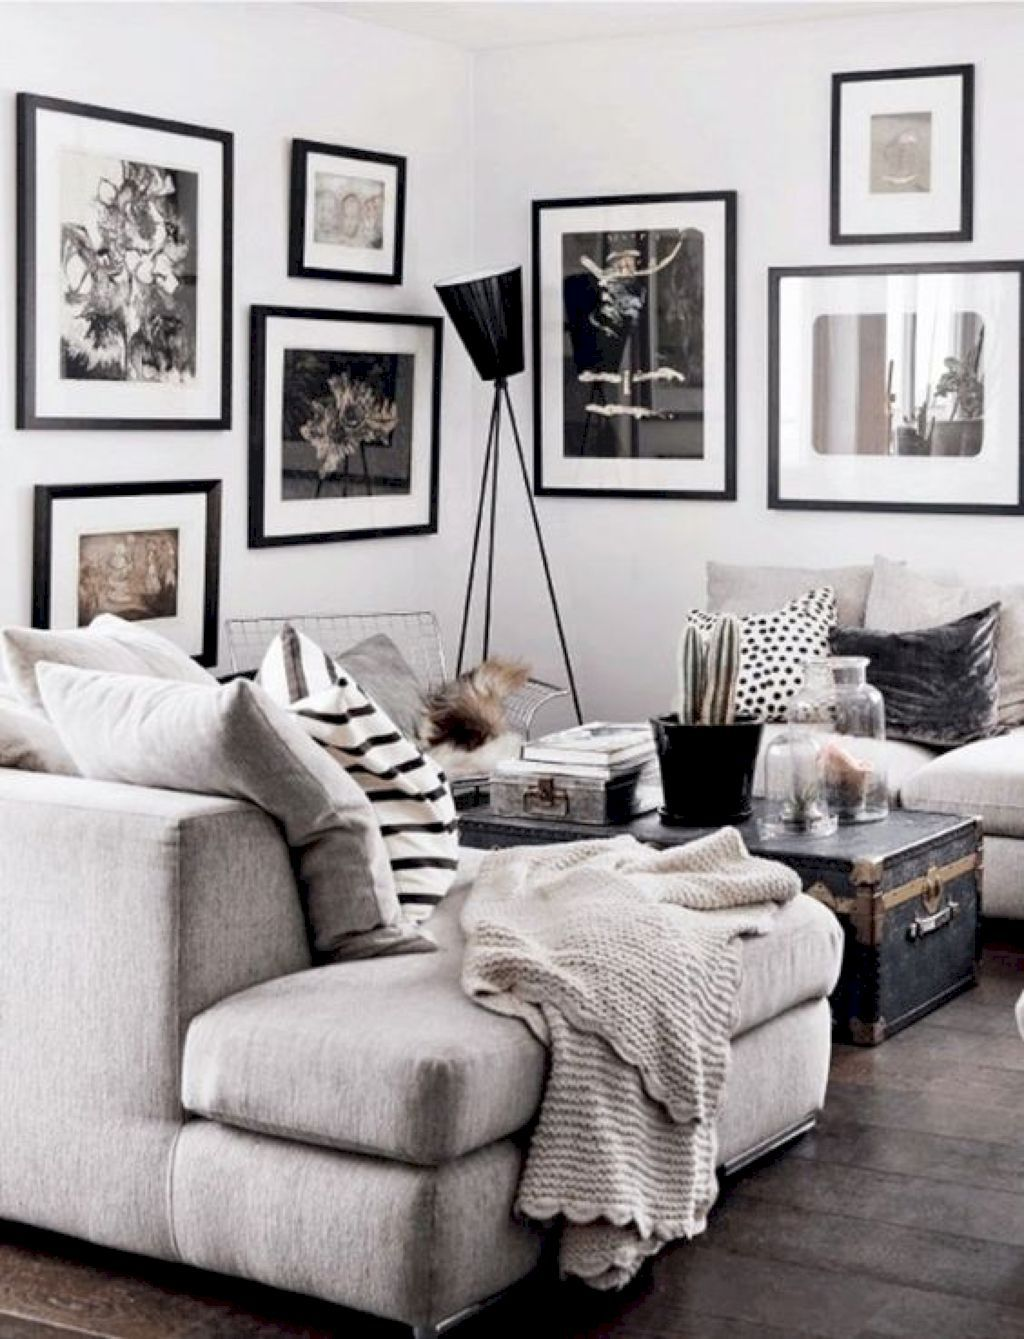 70 Comfy Living Room Decor and Design Ideas | Room decor, Living ...